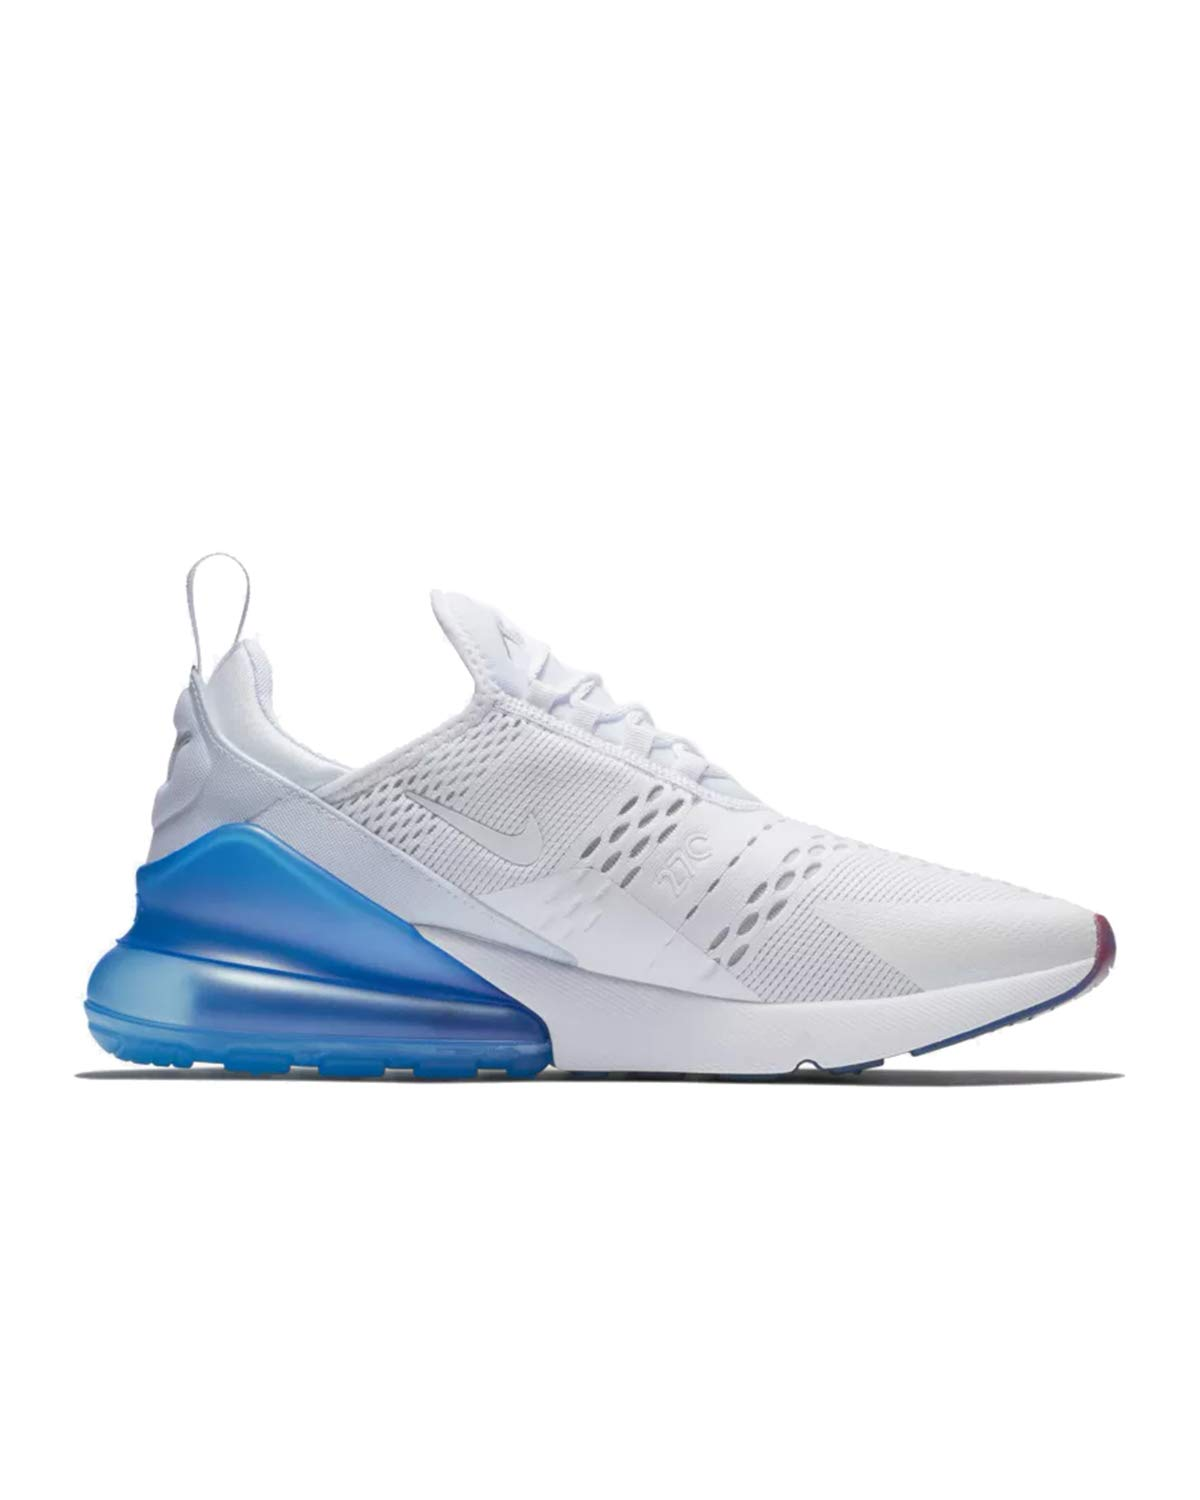 buy popular 1ace9 0e59b Galleon - Nike Mens Air Max 270 Running Shoes White Photo Blue Pure  Platinum AQ7982-100 Size 11